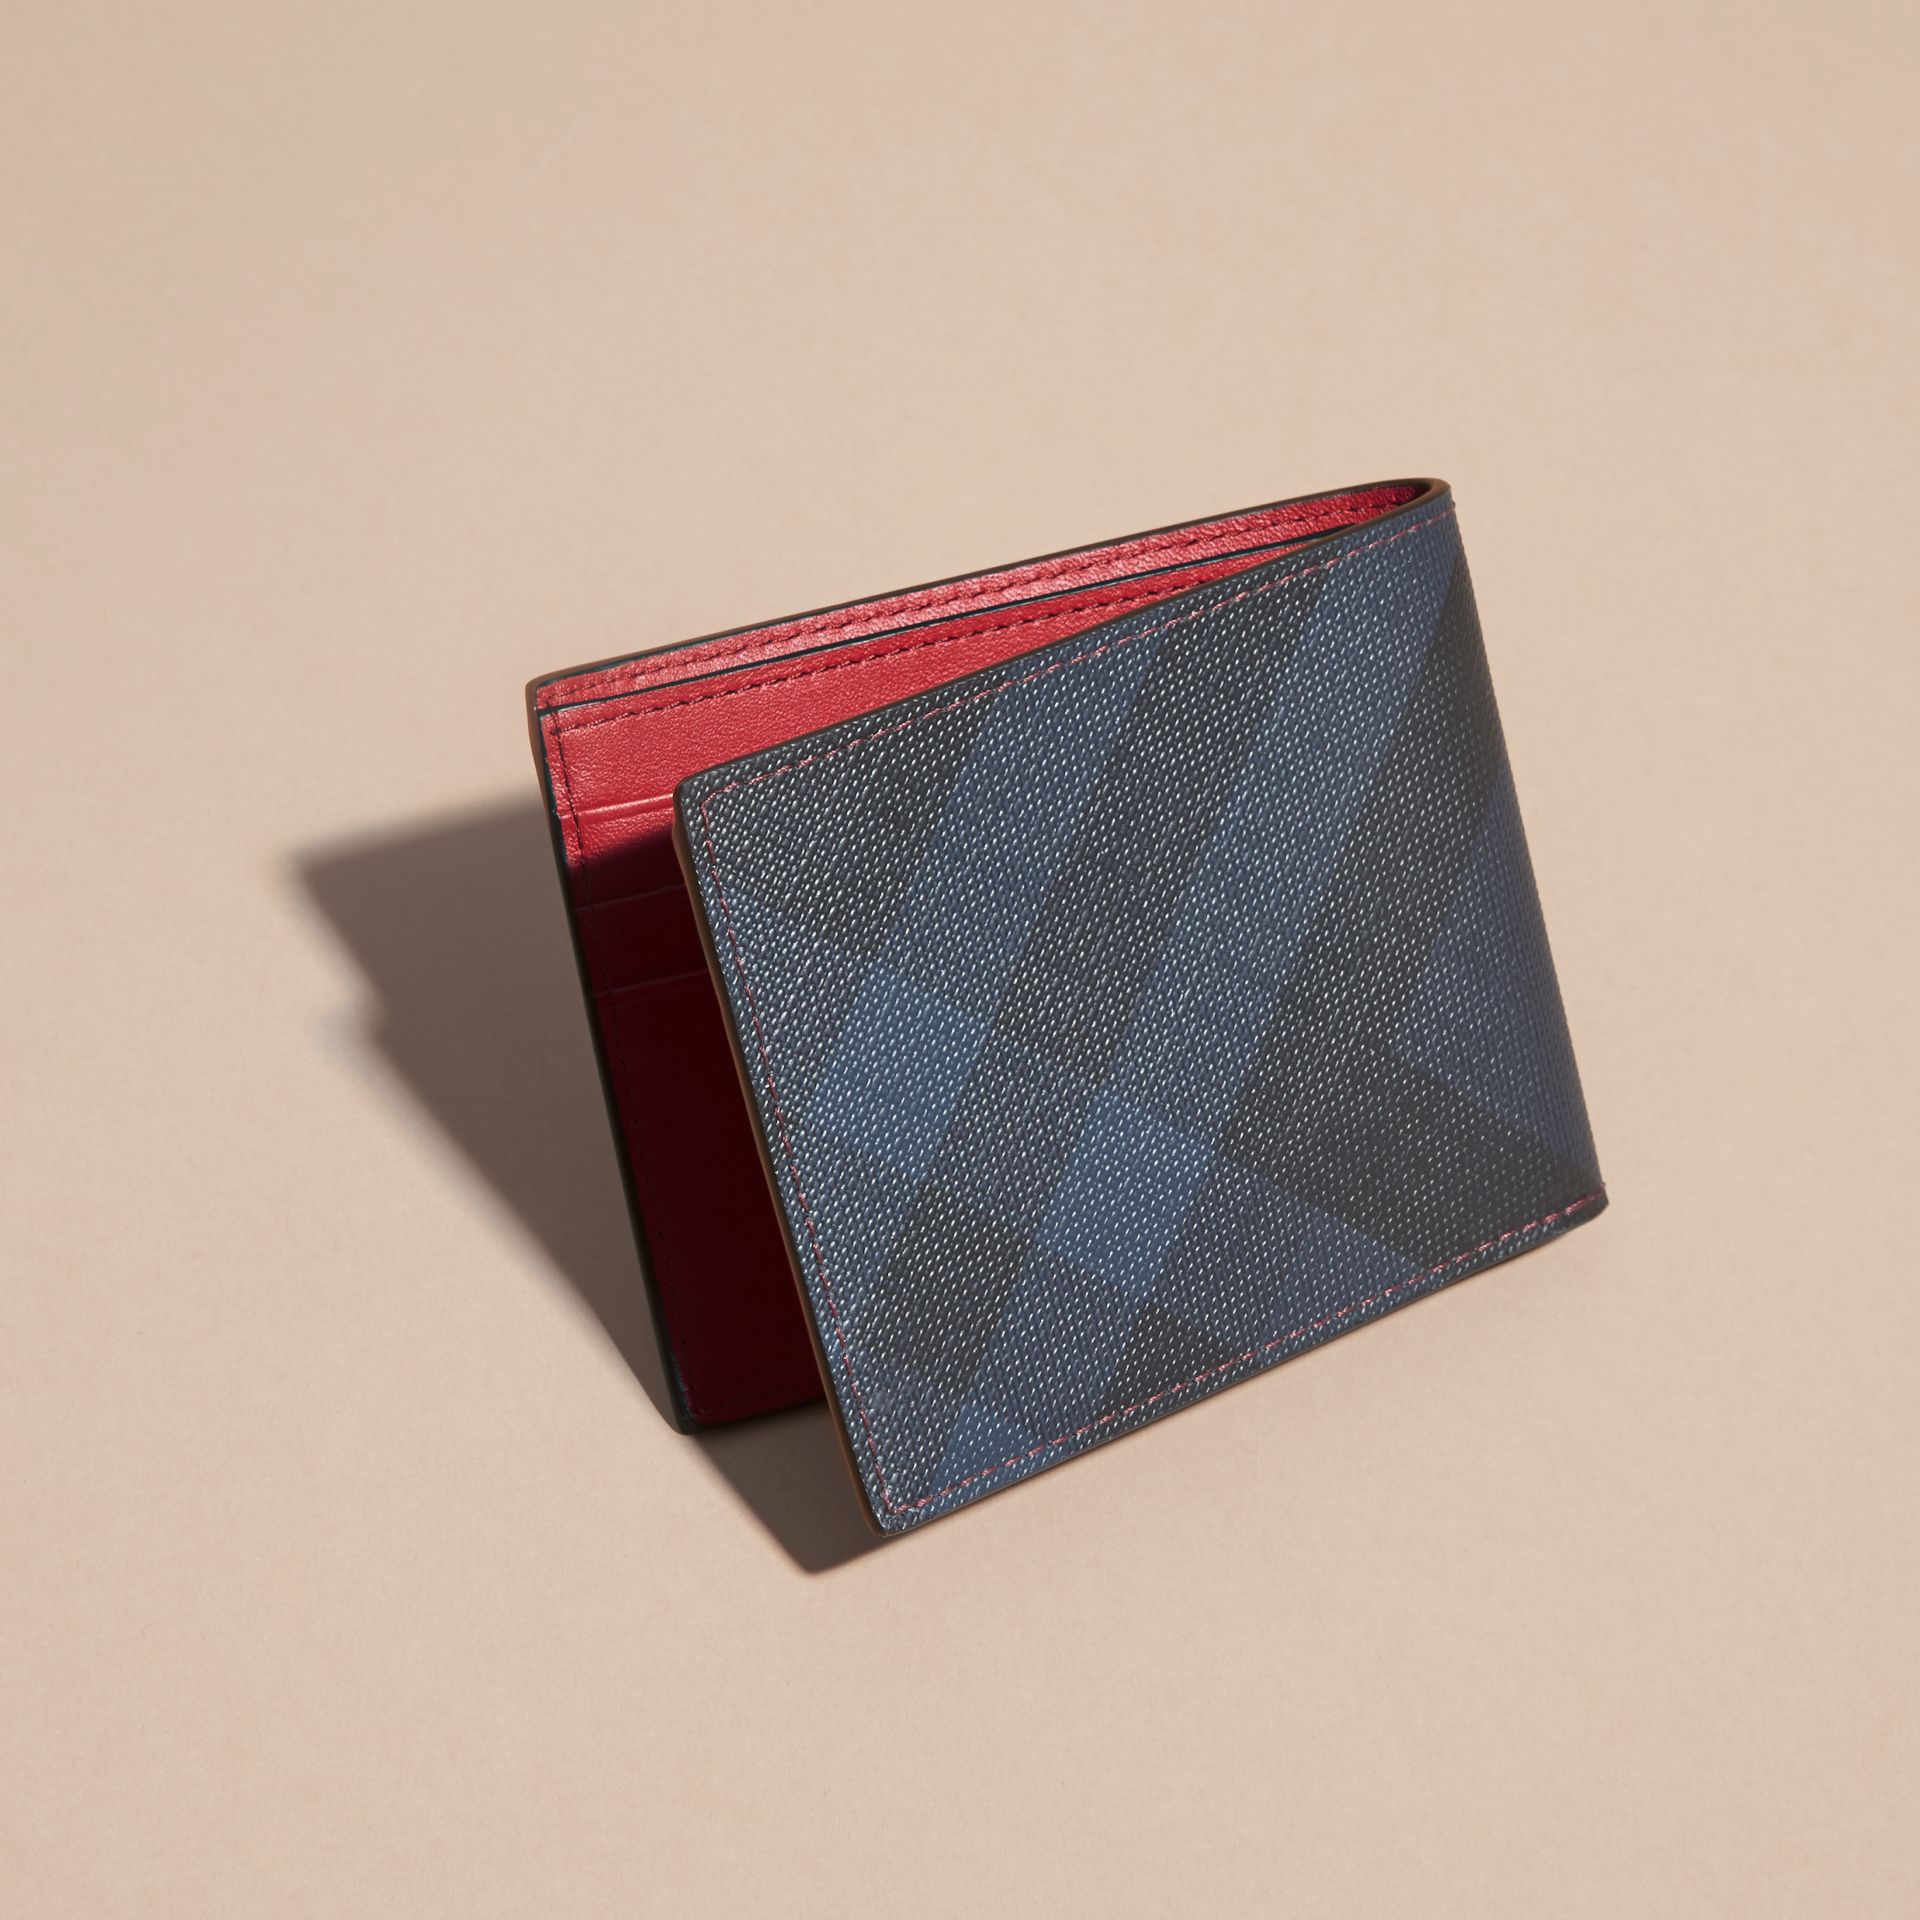 London Check and Leather Bifold Wallet in Parade Red - Men | Burberry - gallery image 4